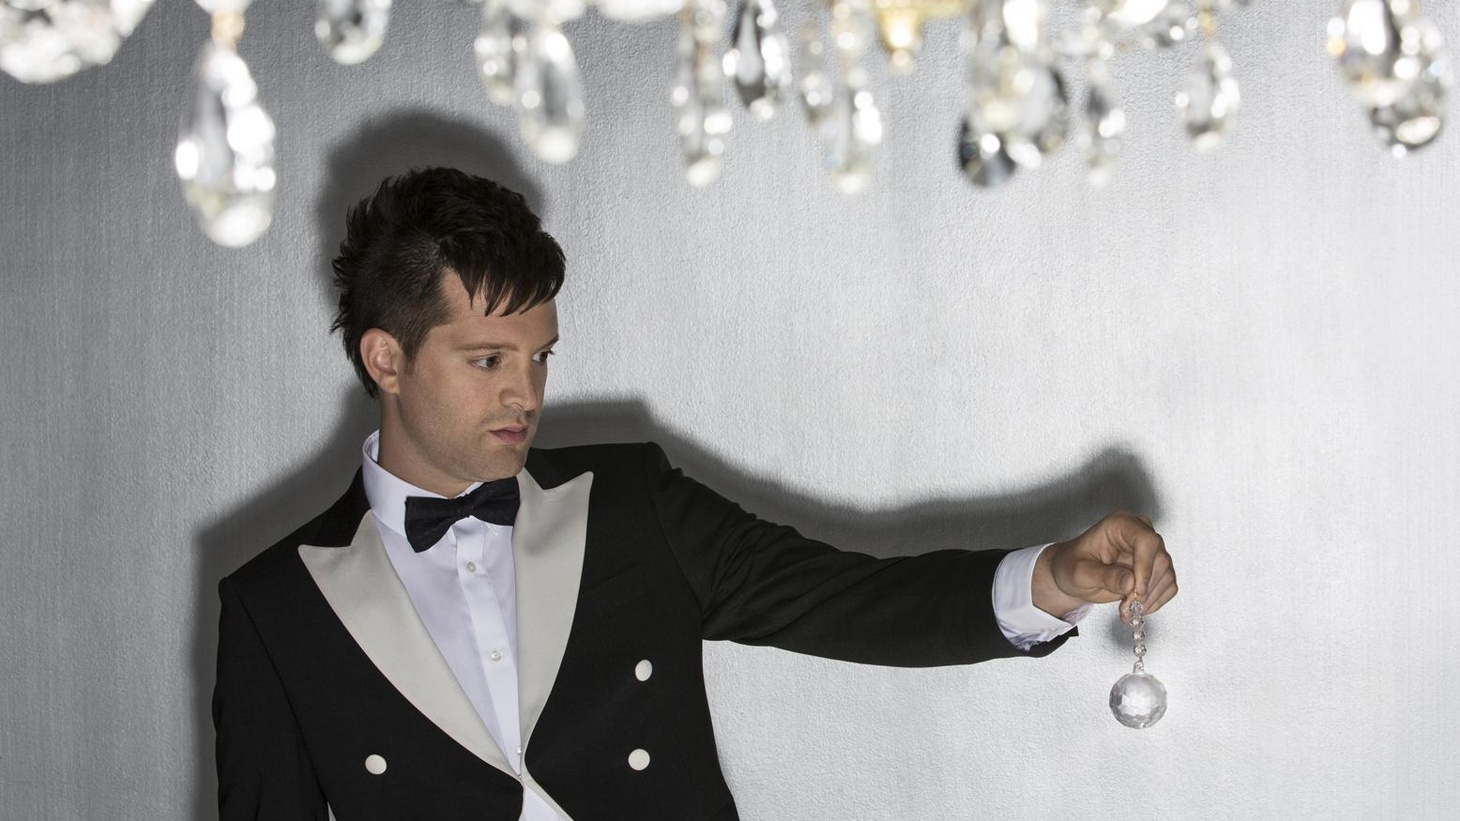 Soul singer Mayer Hawthorne unleashes his love of everything from hip hop to hard rock on his new album, while always keeping it sexy.